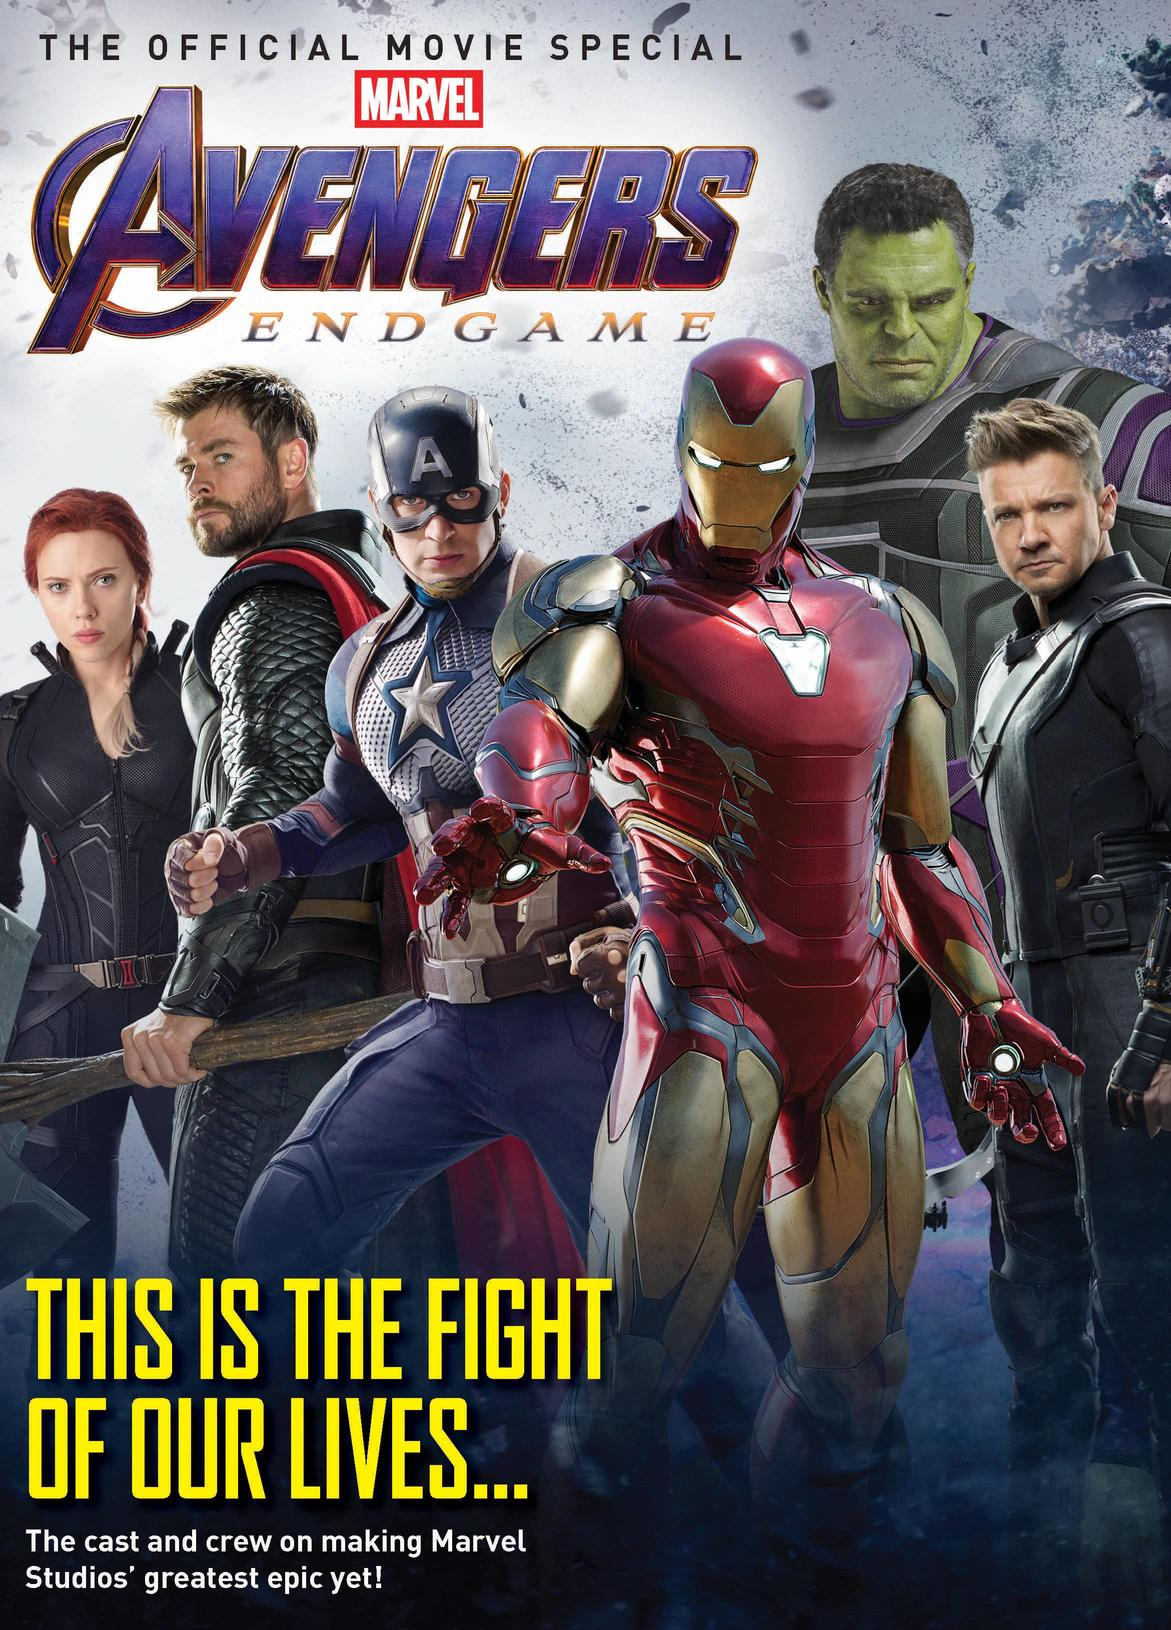 Newstand cover of Avengers Endgame Official Movie Special